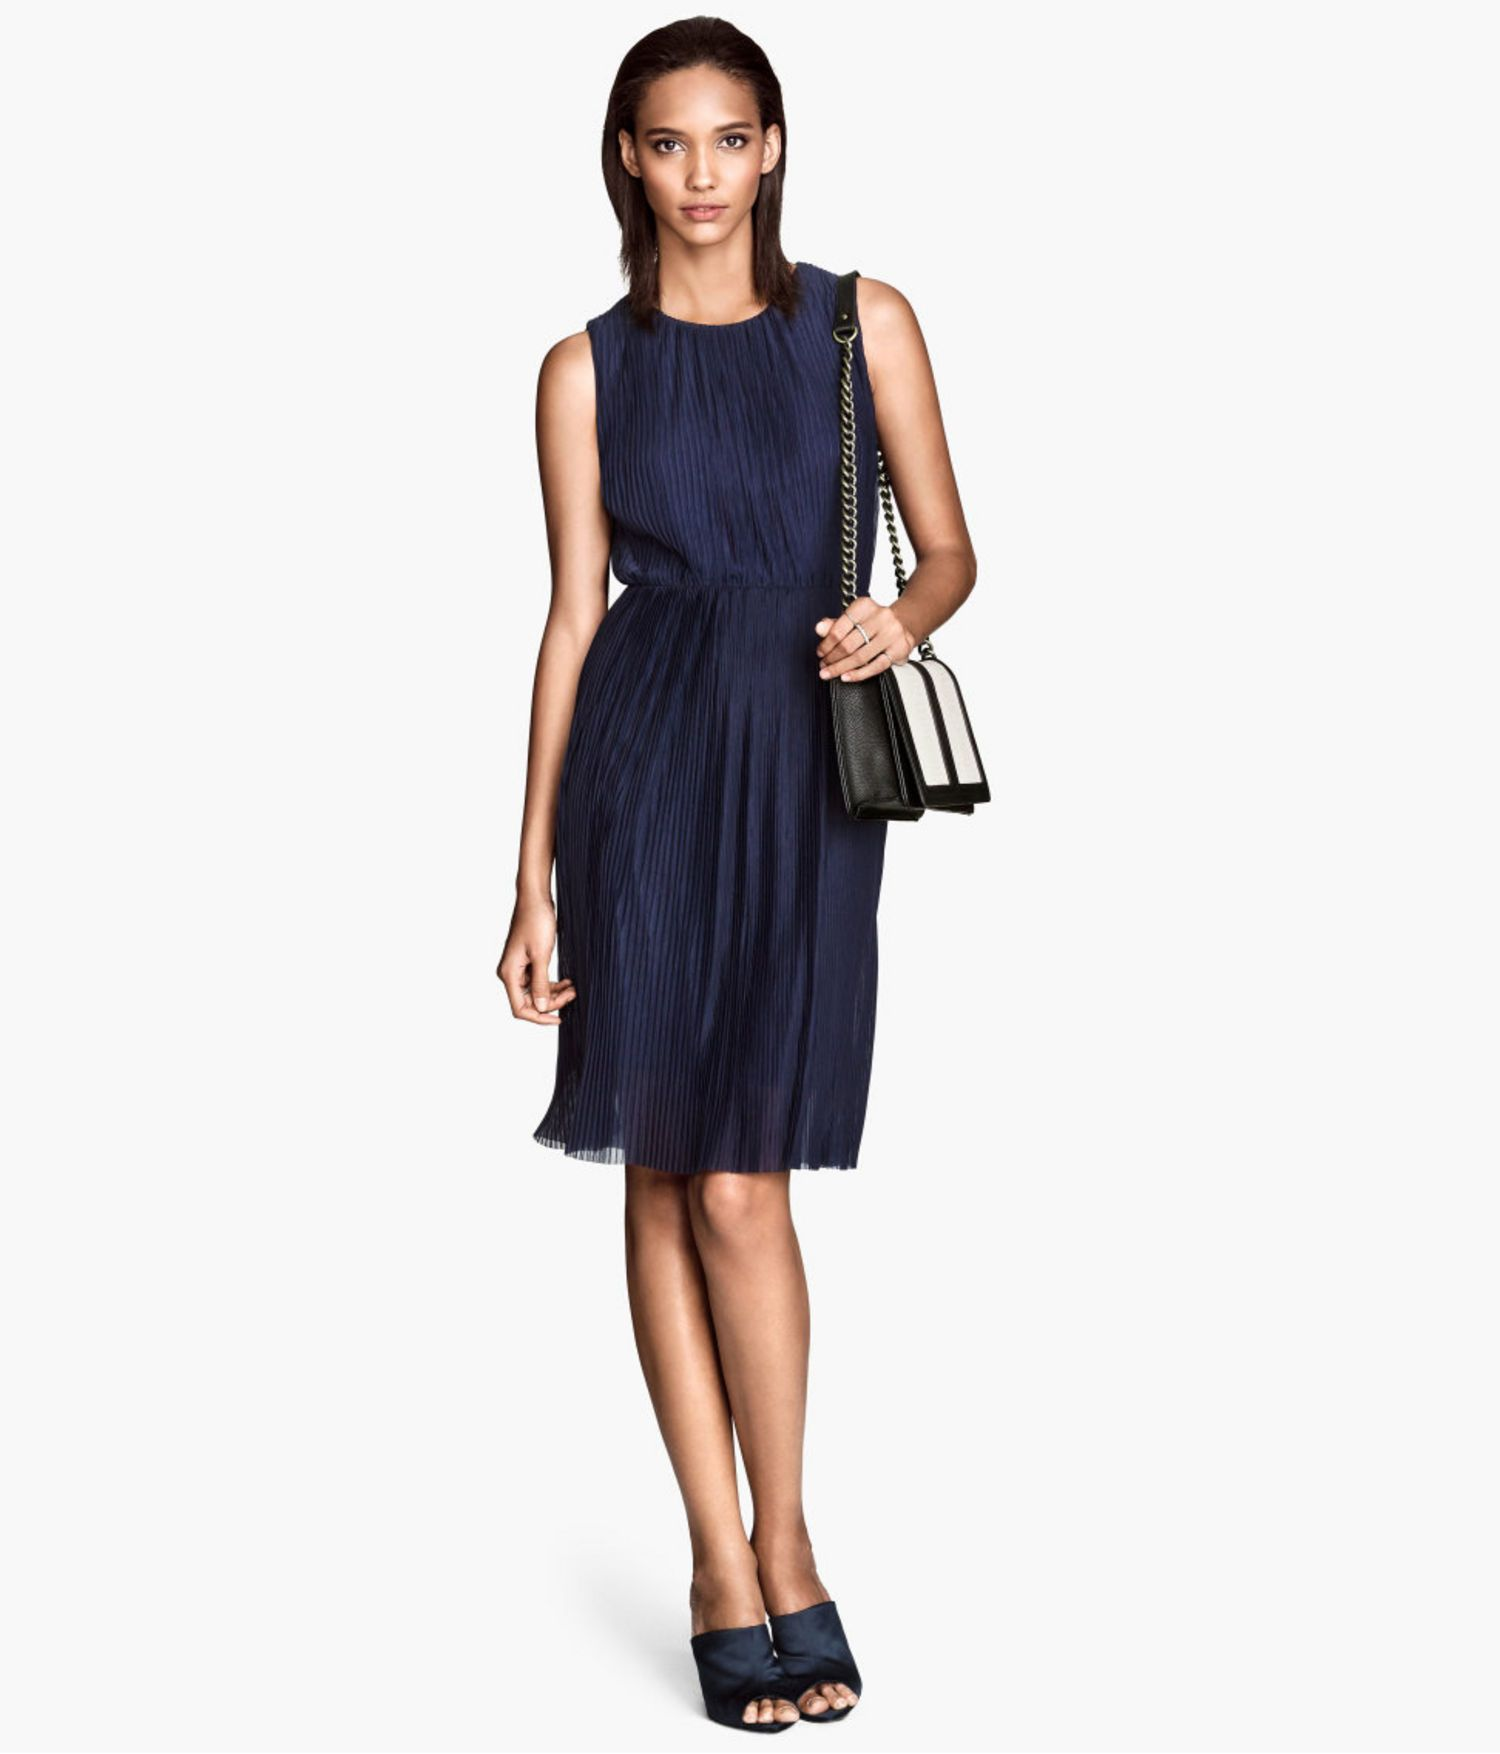 198cb6355308b 17 Work-Appropriate Summer Dresses That Will Keep You Cool But Won't Get You  Fired